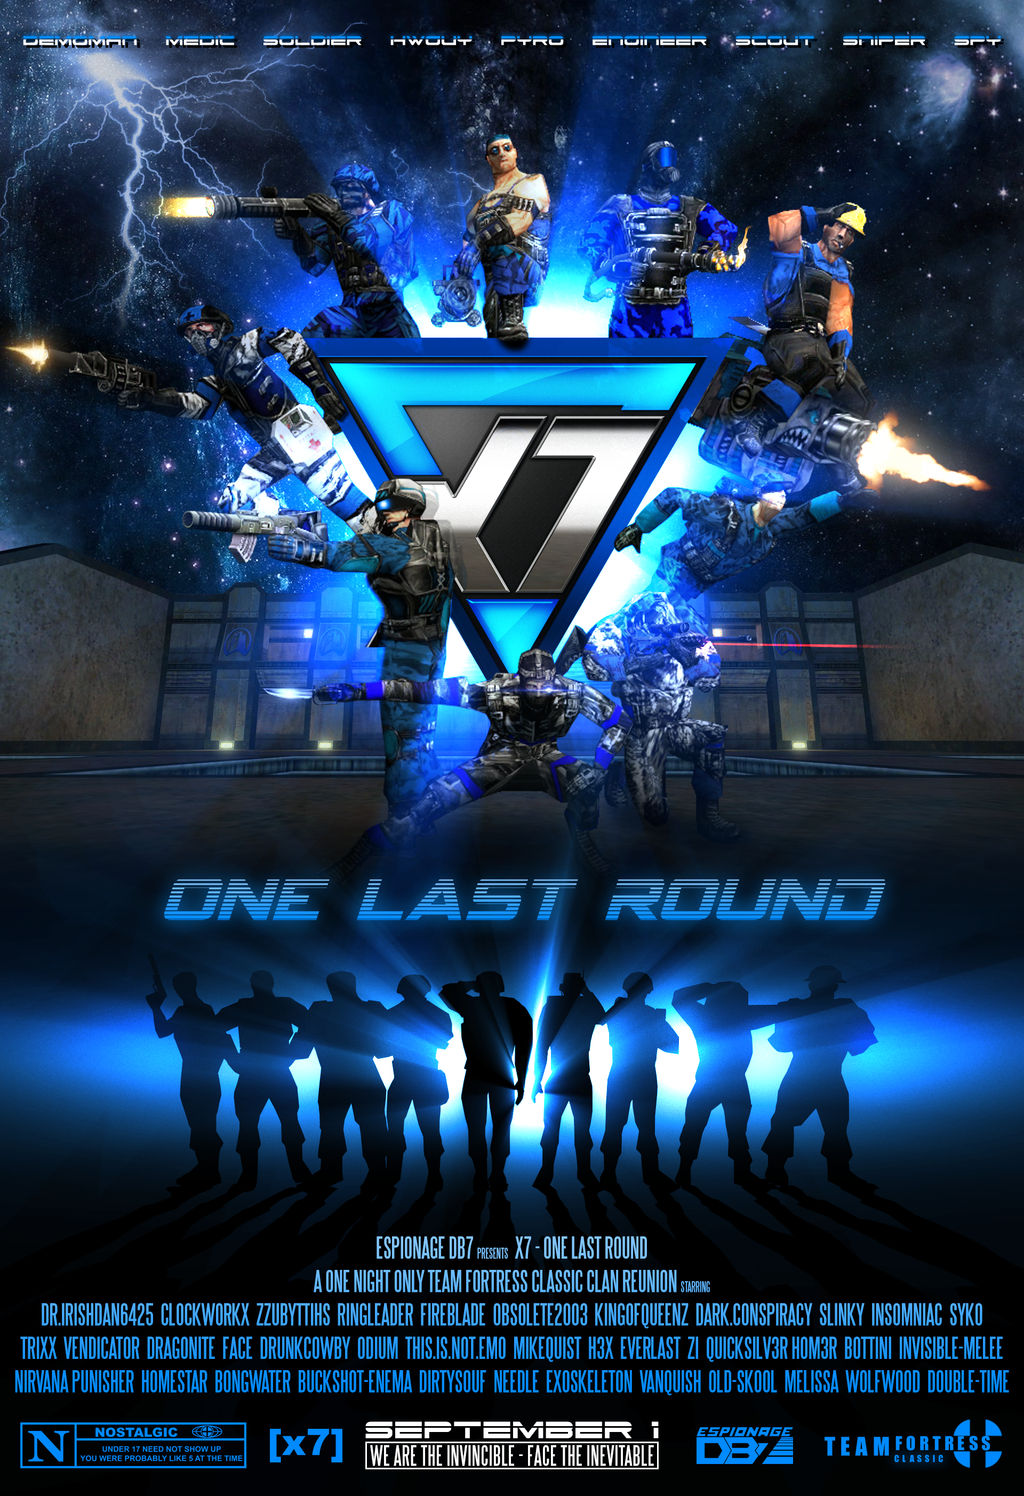 [x7] One Last Round - Movie Poster by EspionageDB7